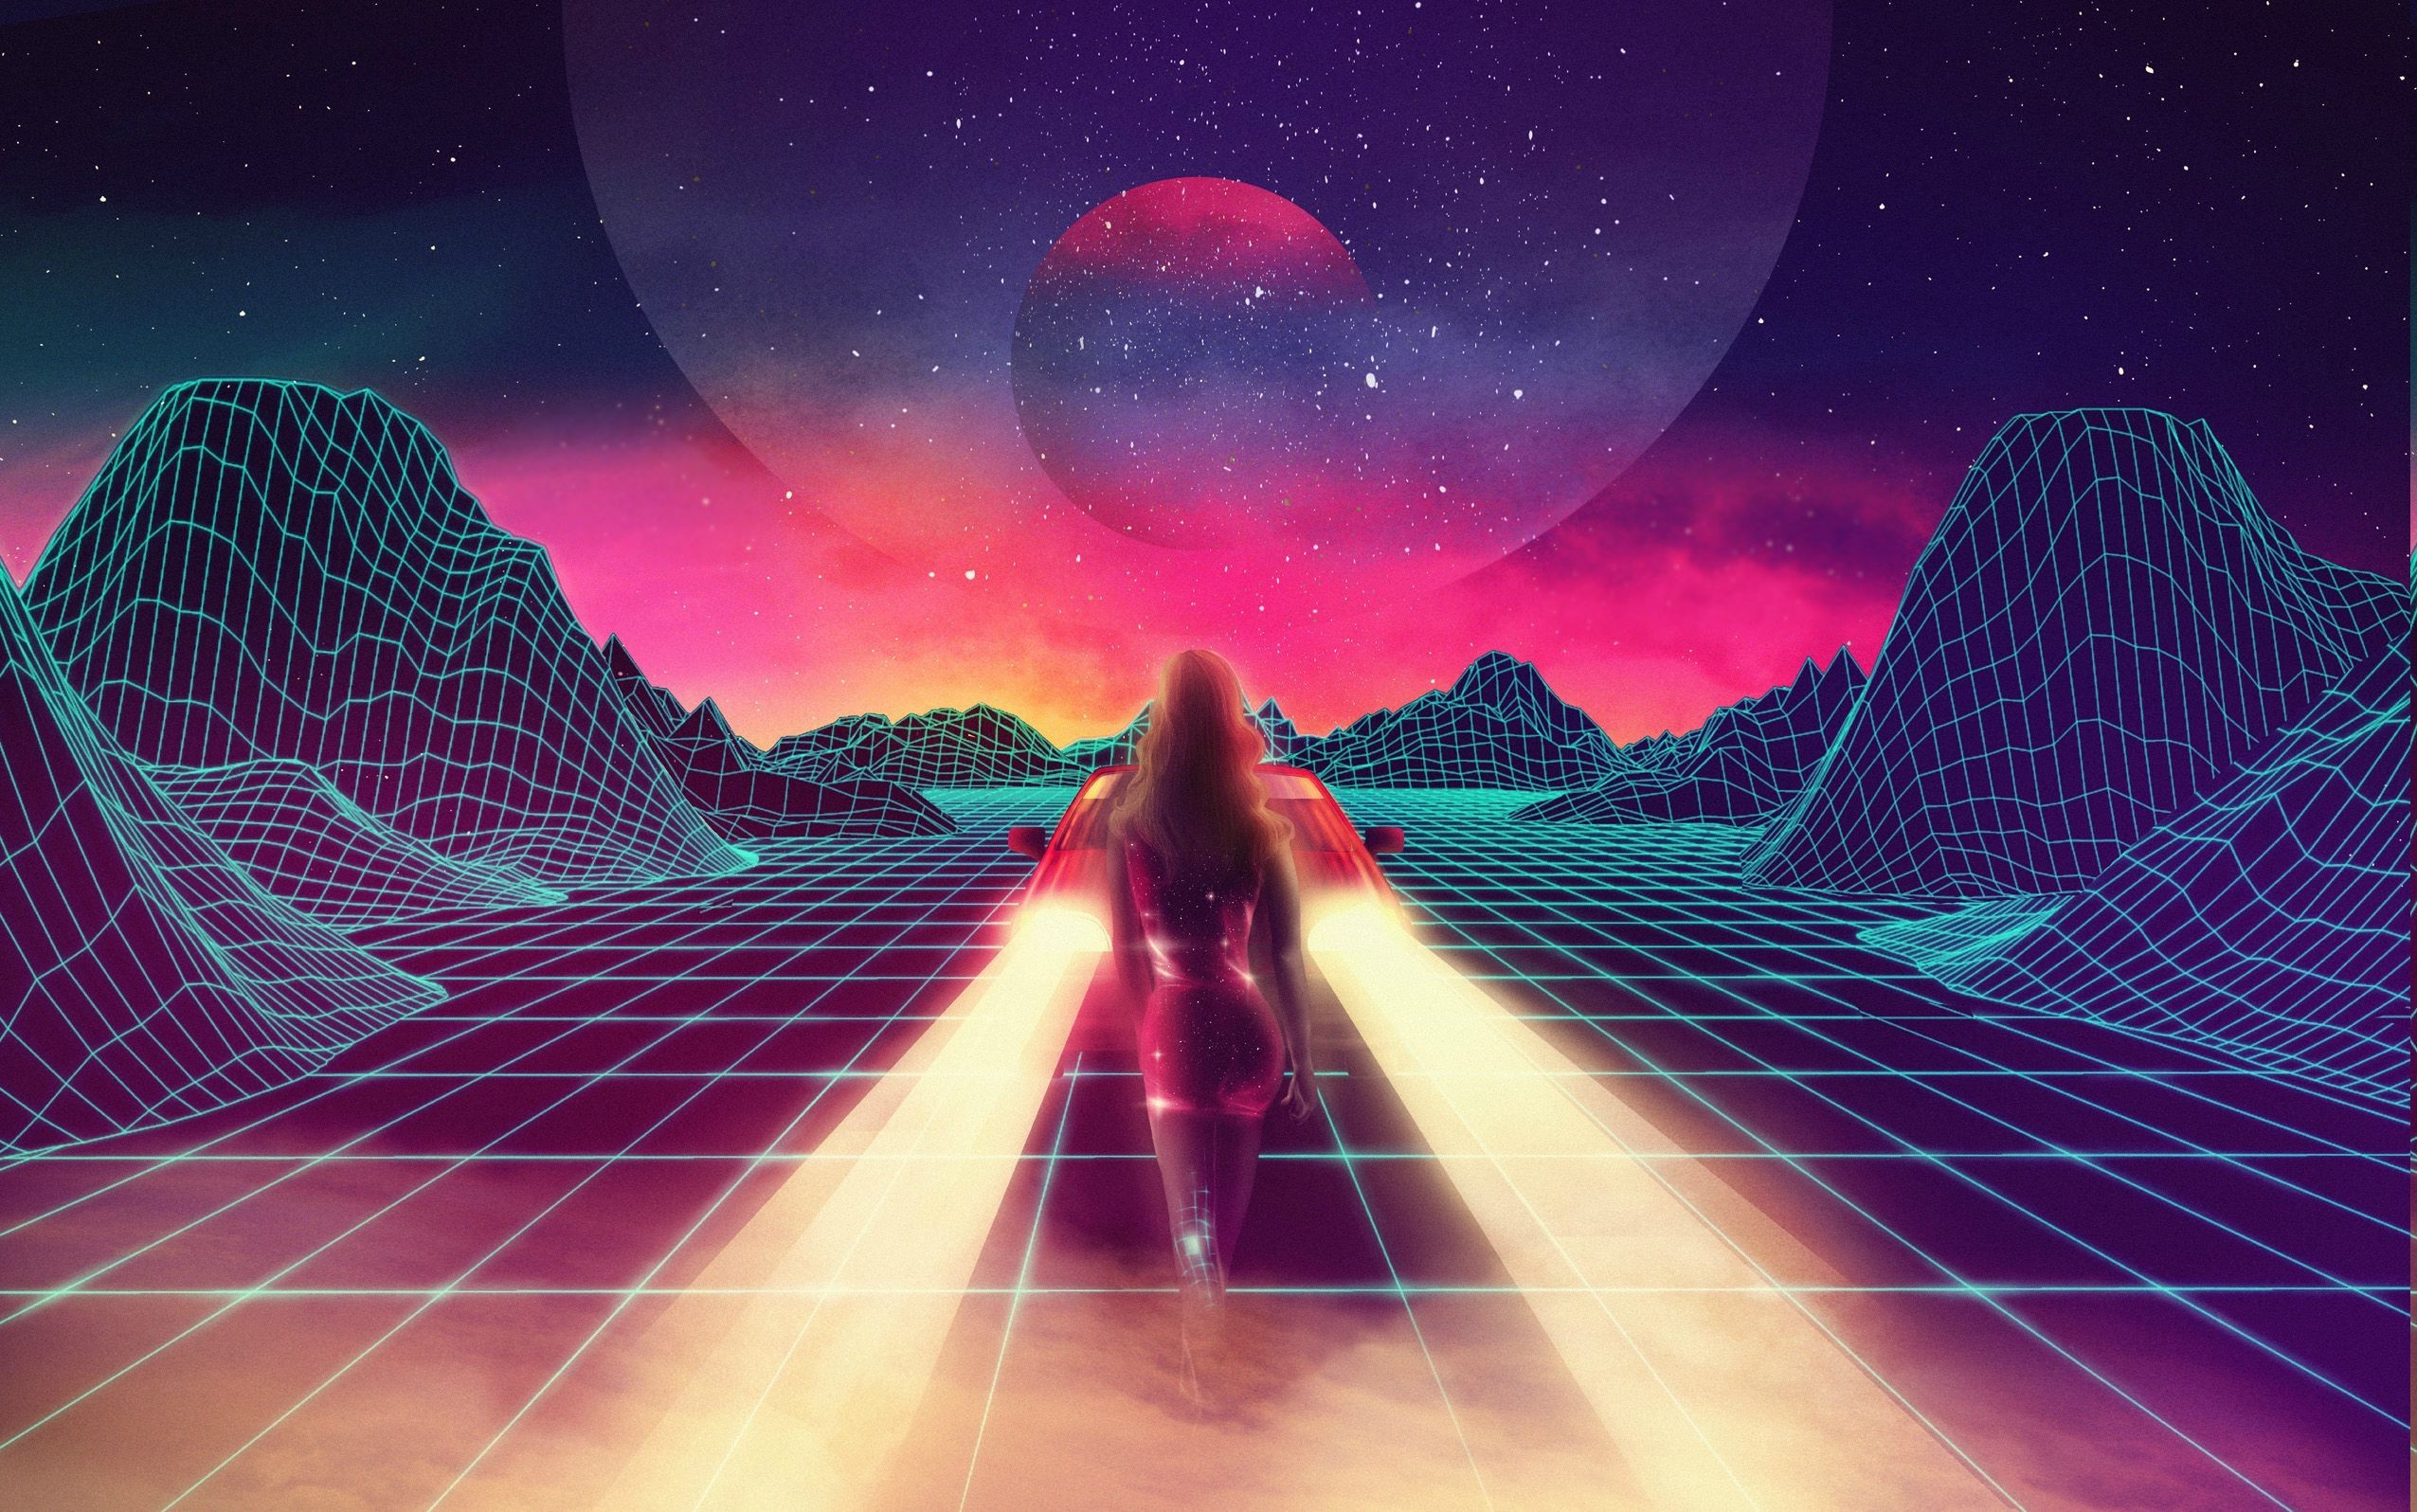 Retro Iphone 6 Wallpaper Hd: Synthwave Wallpaper ·① Download Free High Resolution